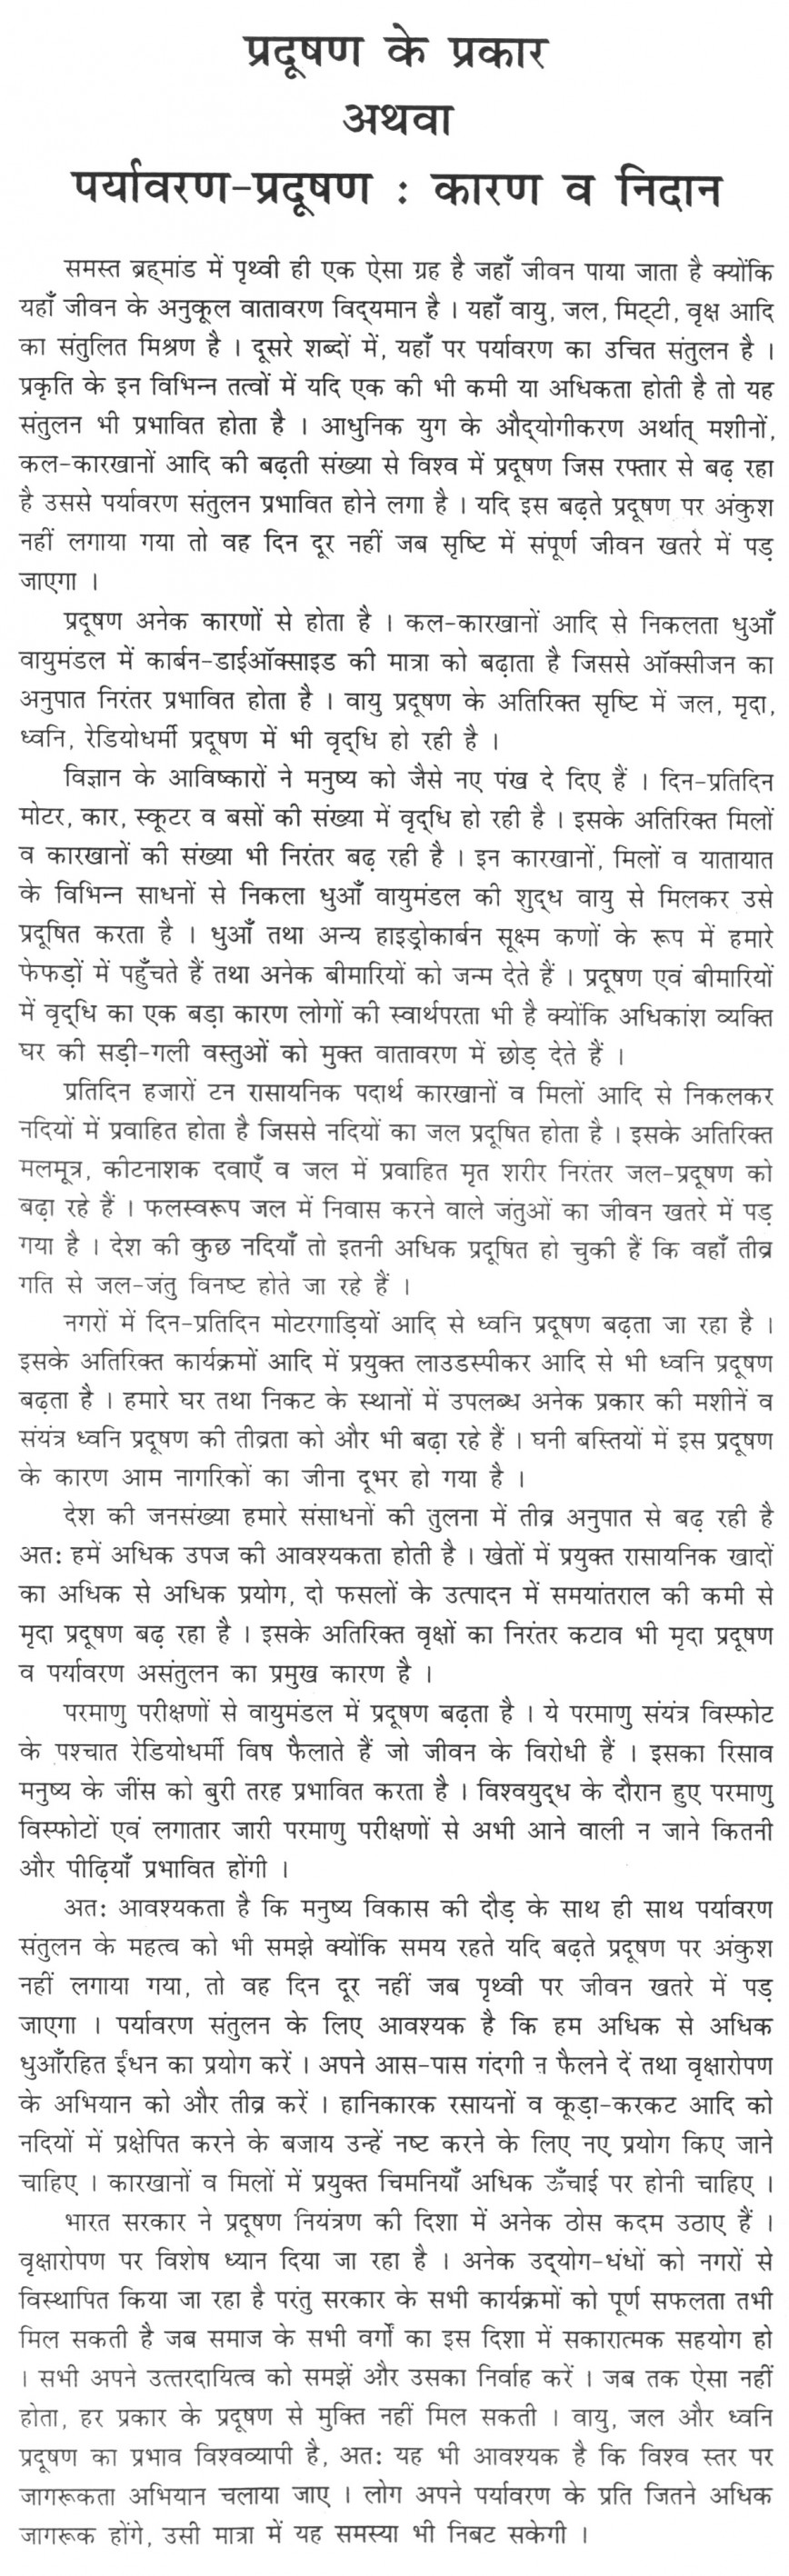 014 Good Habits Essay In Hindi Exceptional Bad Eating Habit 868